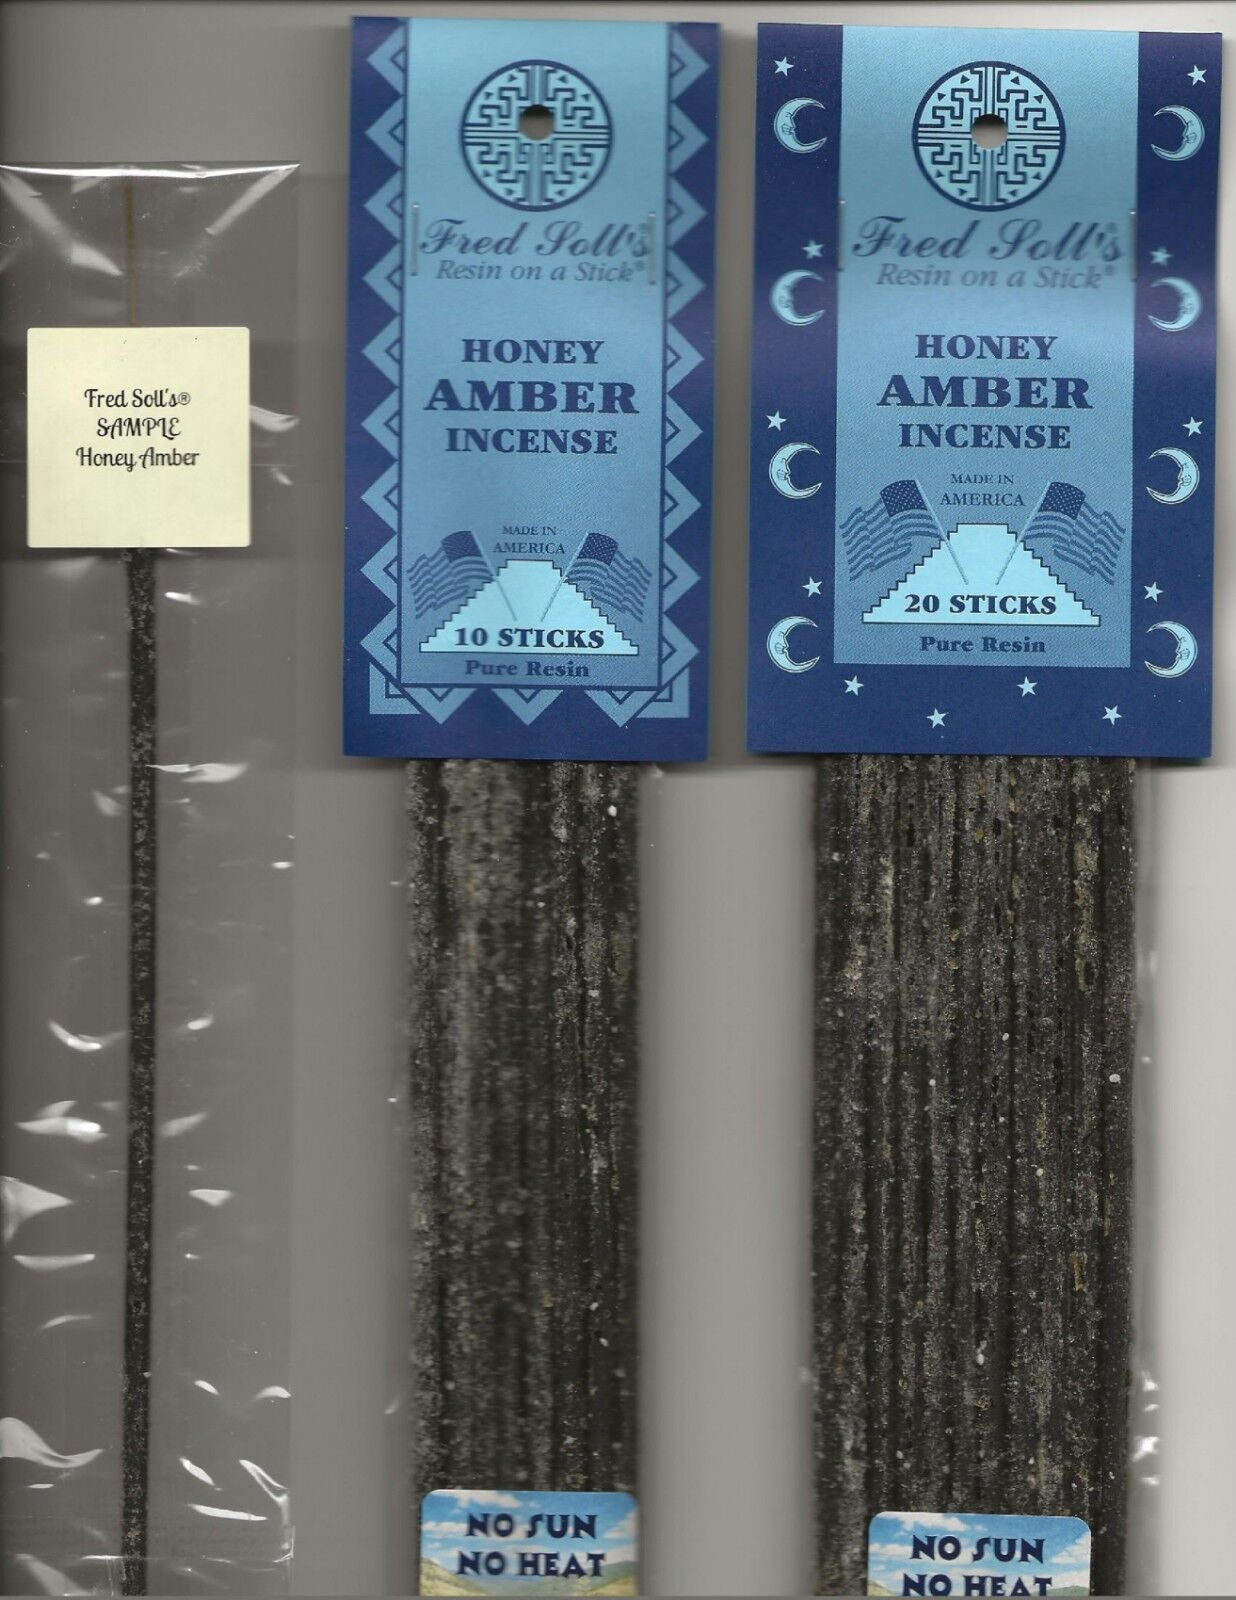 FRED SOLL/'S® RESIN ON A STICK® NEW MEXICO SANDALWOOD INCENSE